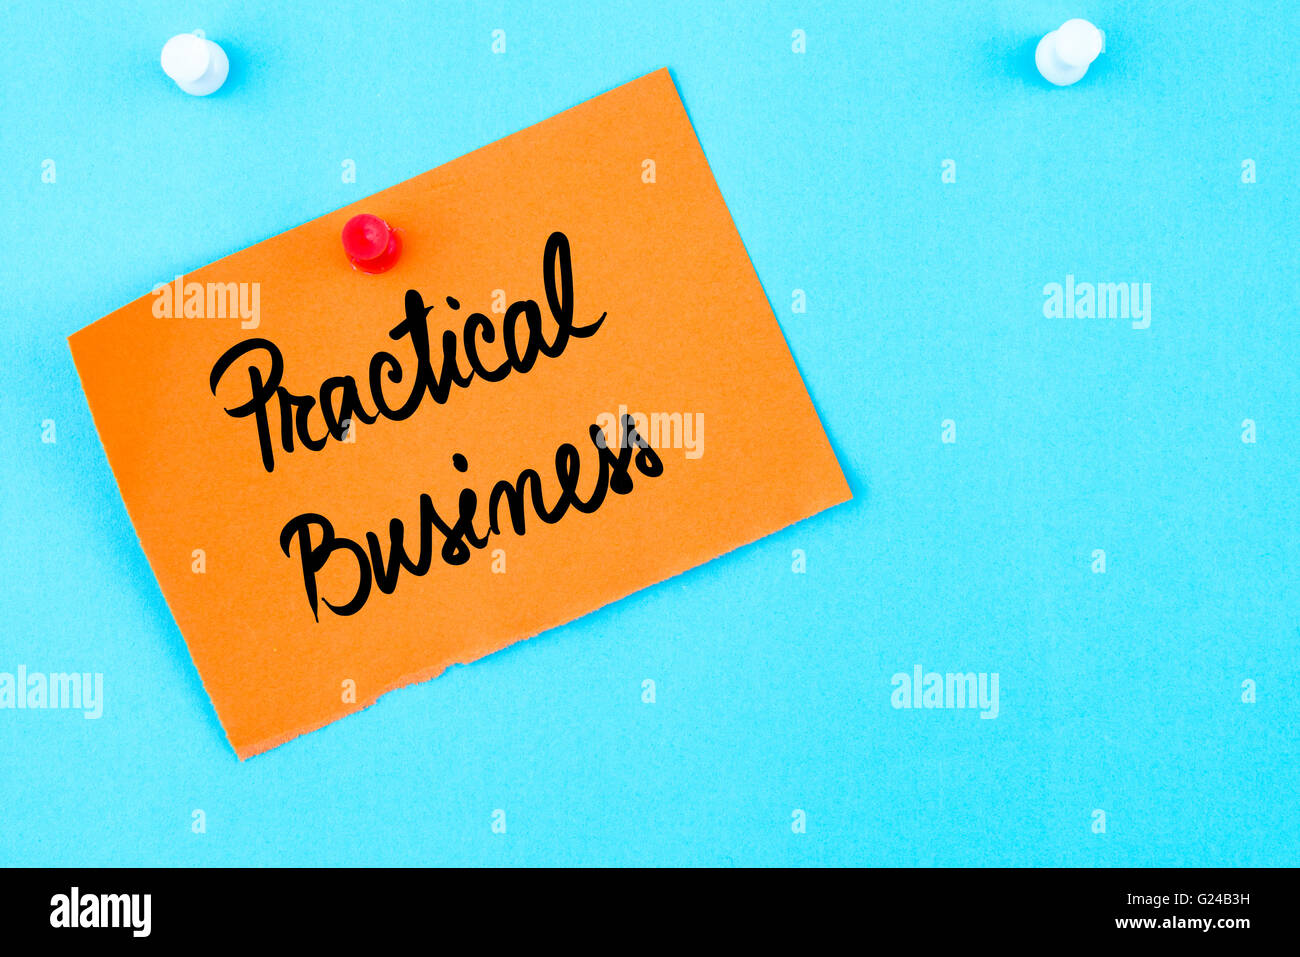 Practical Business written on orange paper note pinned on cork board with white thumbtack, copy space available - Stock Image